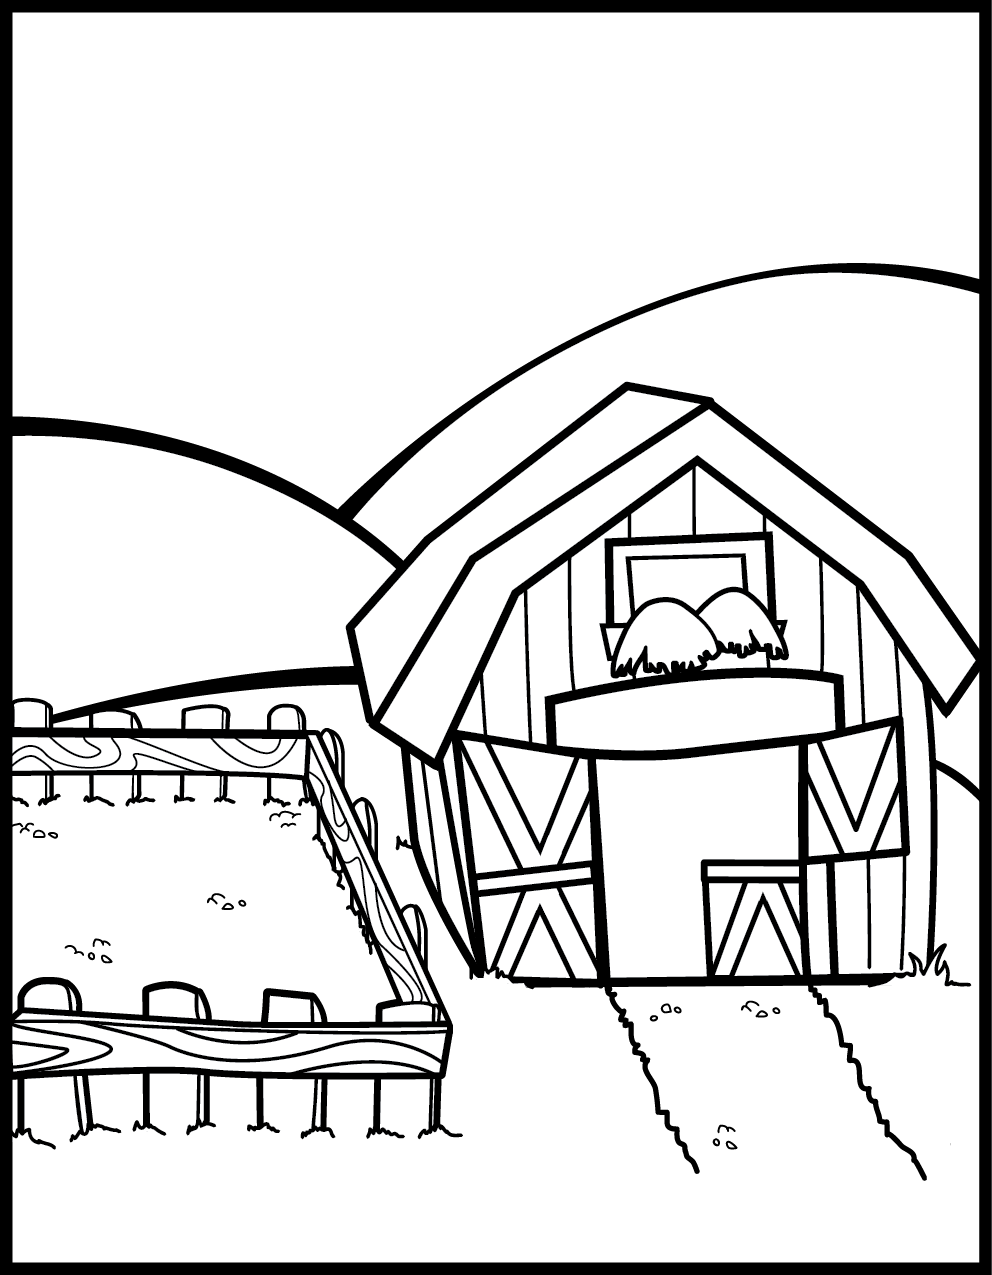 farm coloring pages for preschoolers - photo#29